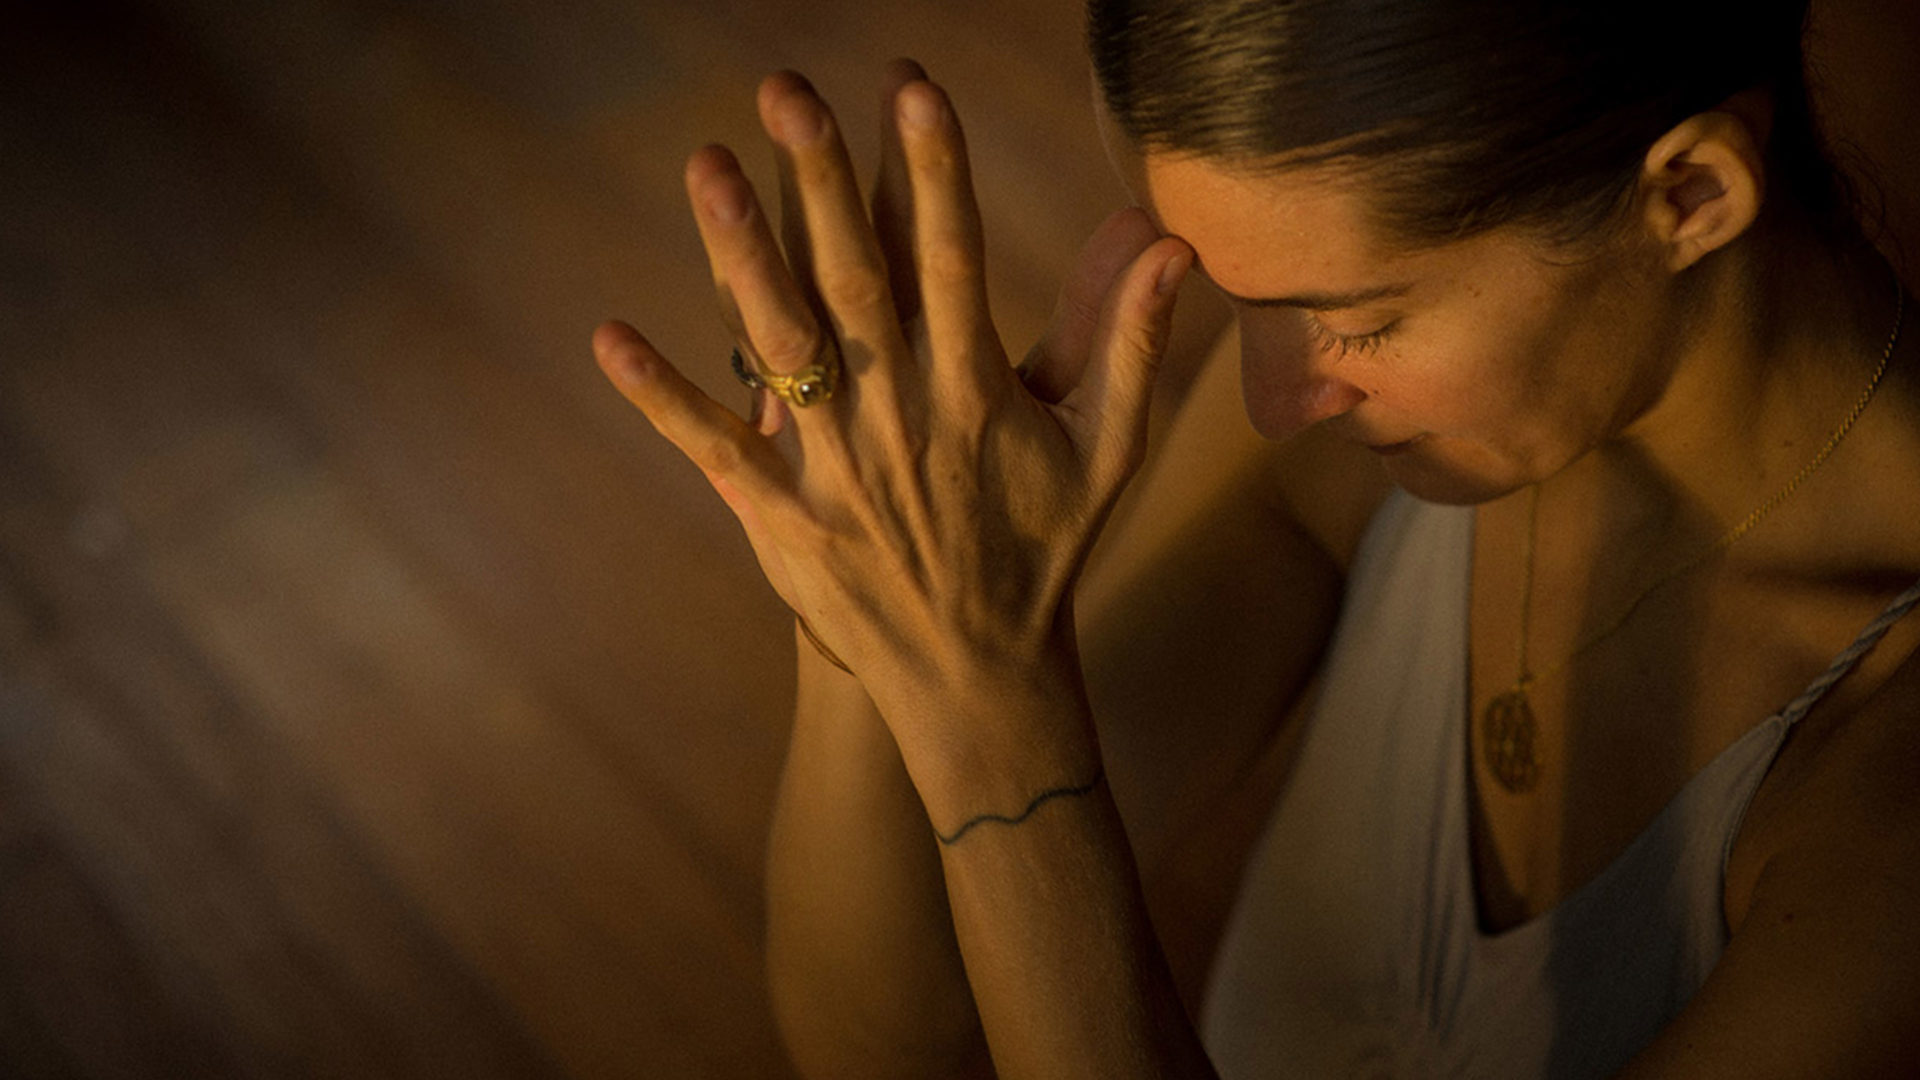 elena brower clasps hands in a yoga pose and holds them to her forehead